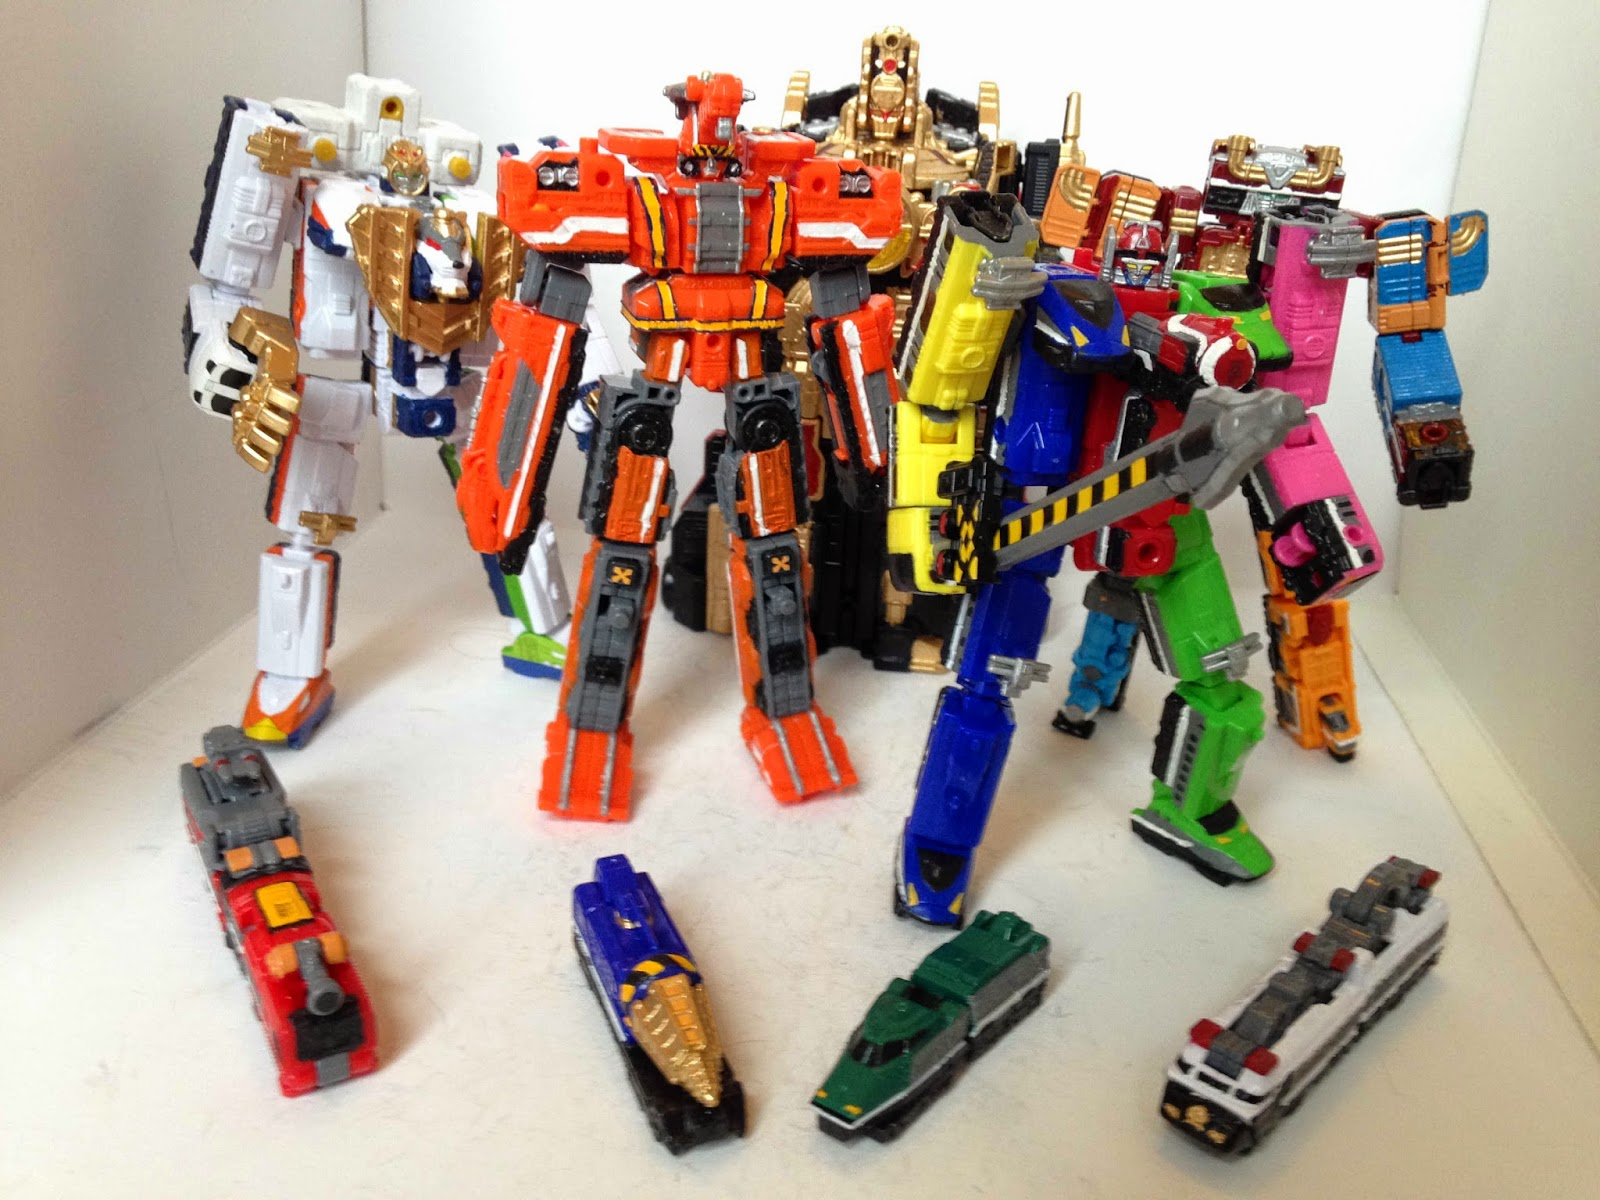 The ToQger minipla kits together